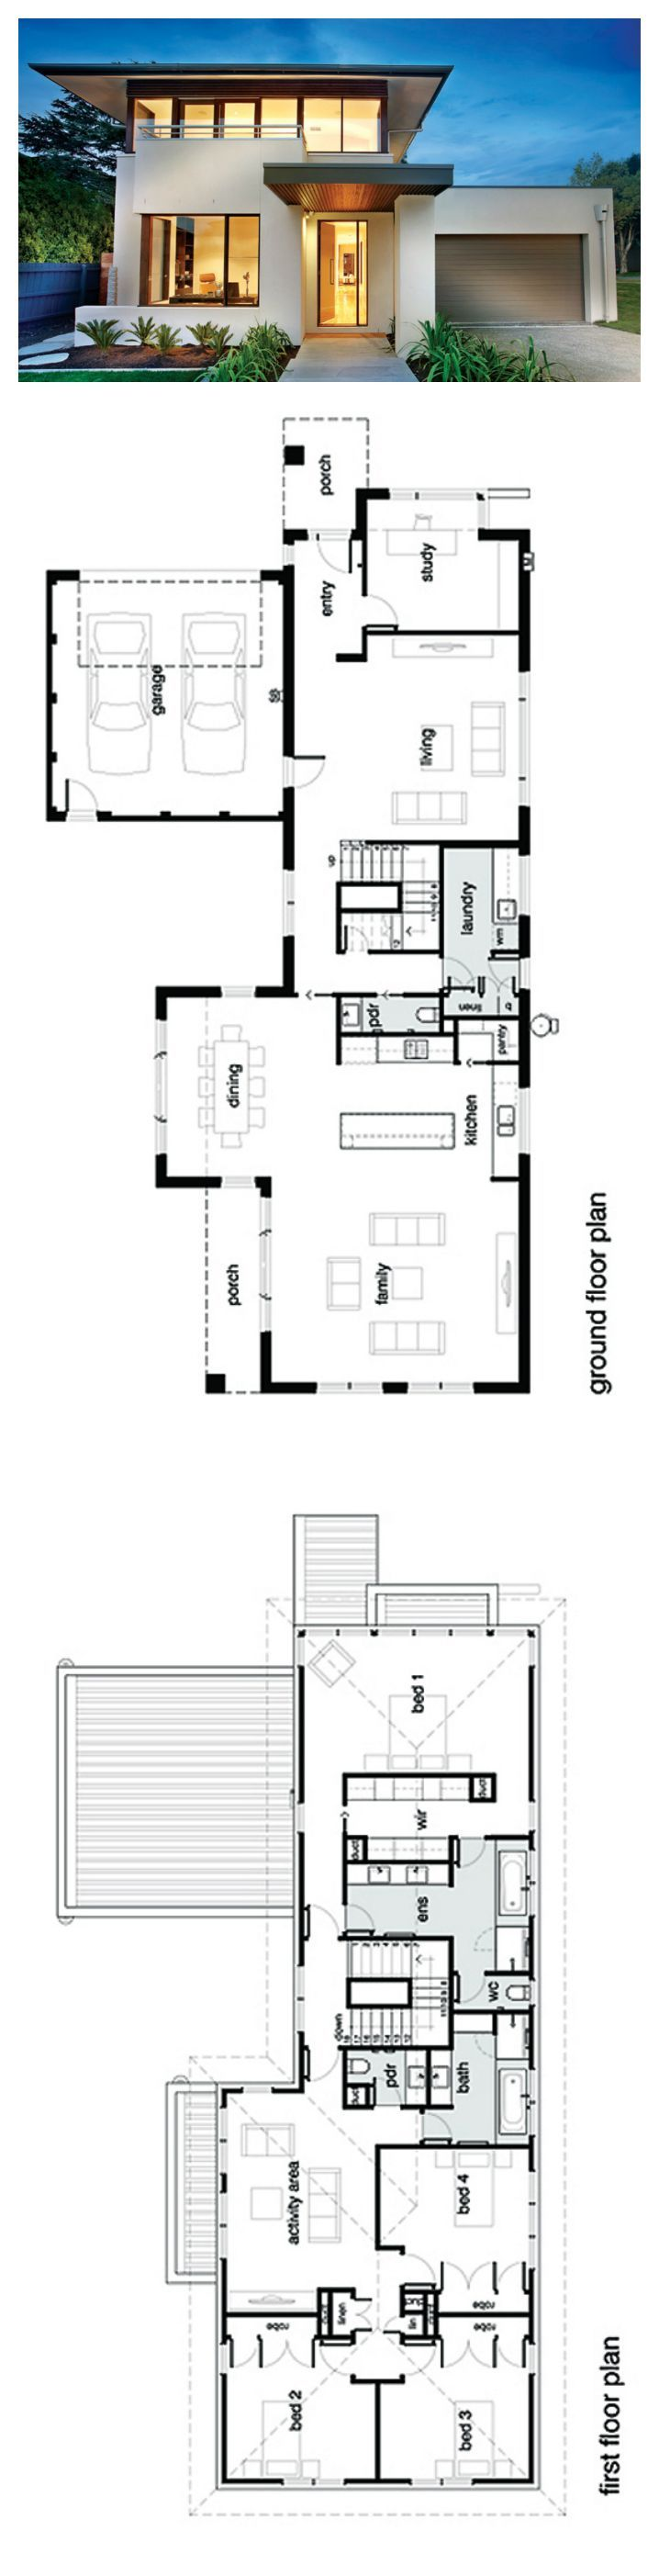 Best 25 modern house plans ideas on pinterest modern for Best contemporary home designs